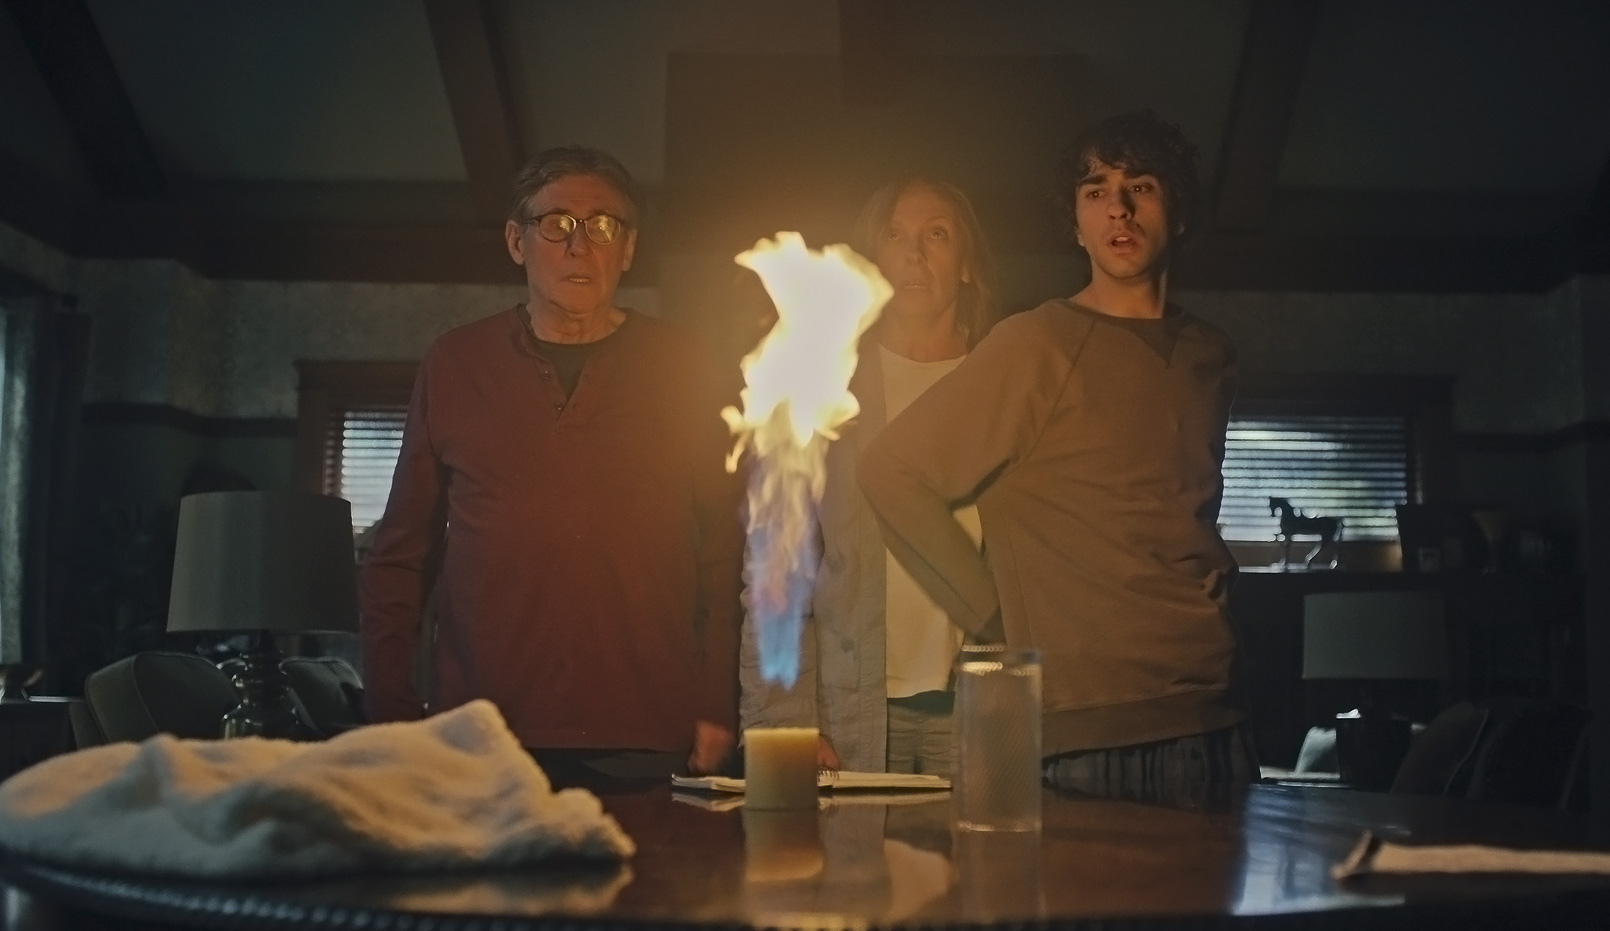 Gabriel Byrne, Toni Collette, and Alex Wolff in Hereditary (2018)